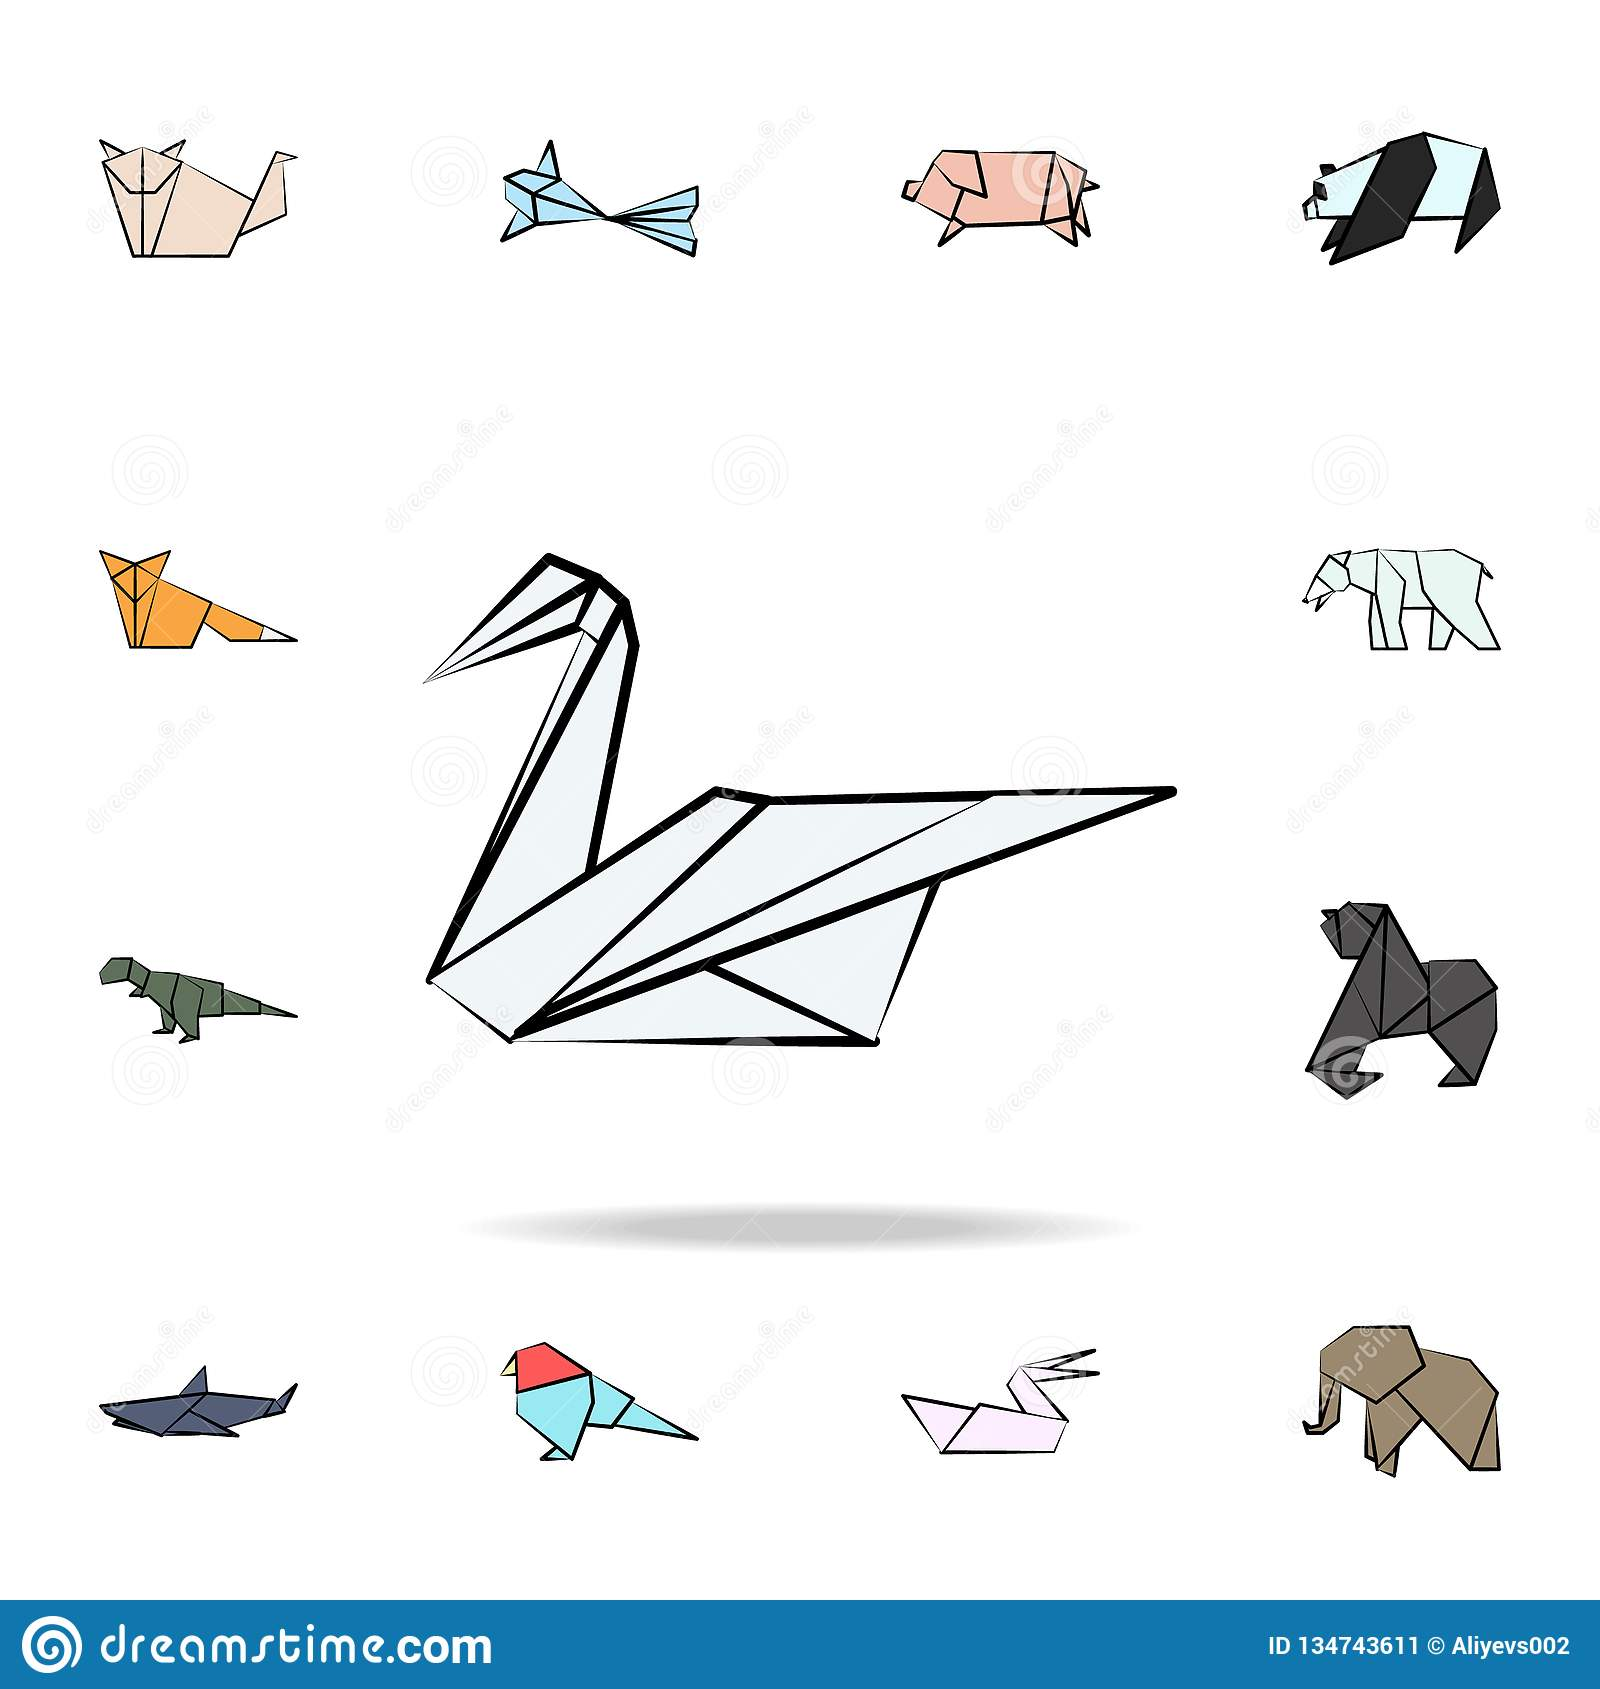 swan colored origami icon. Detailed set of origami animal in hand drawn style icons. Premium graphic design. One of the collection